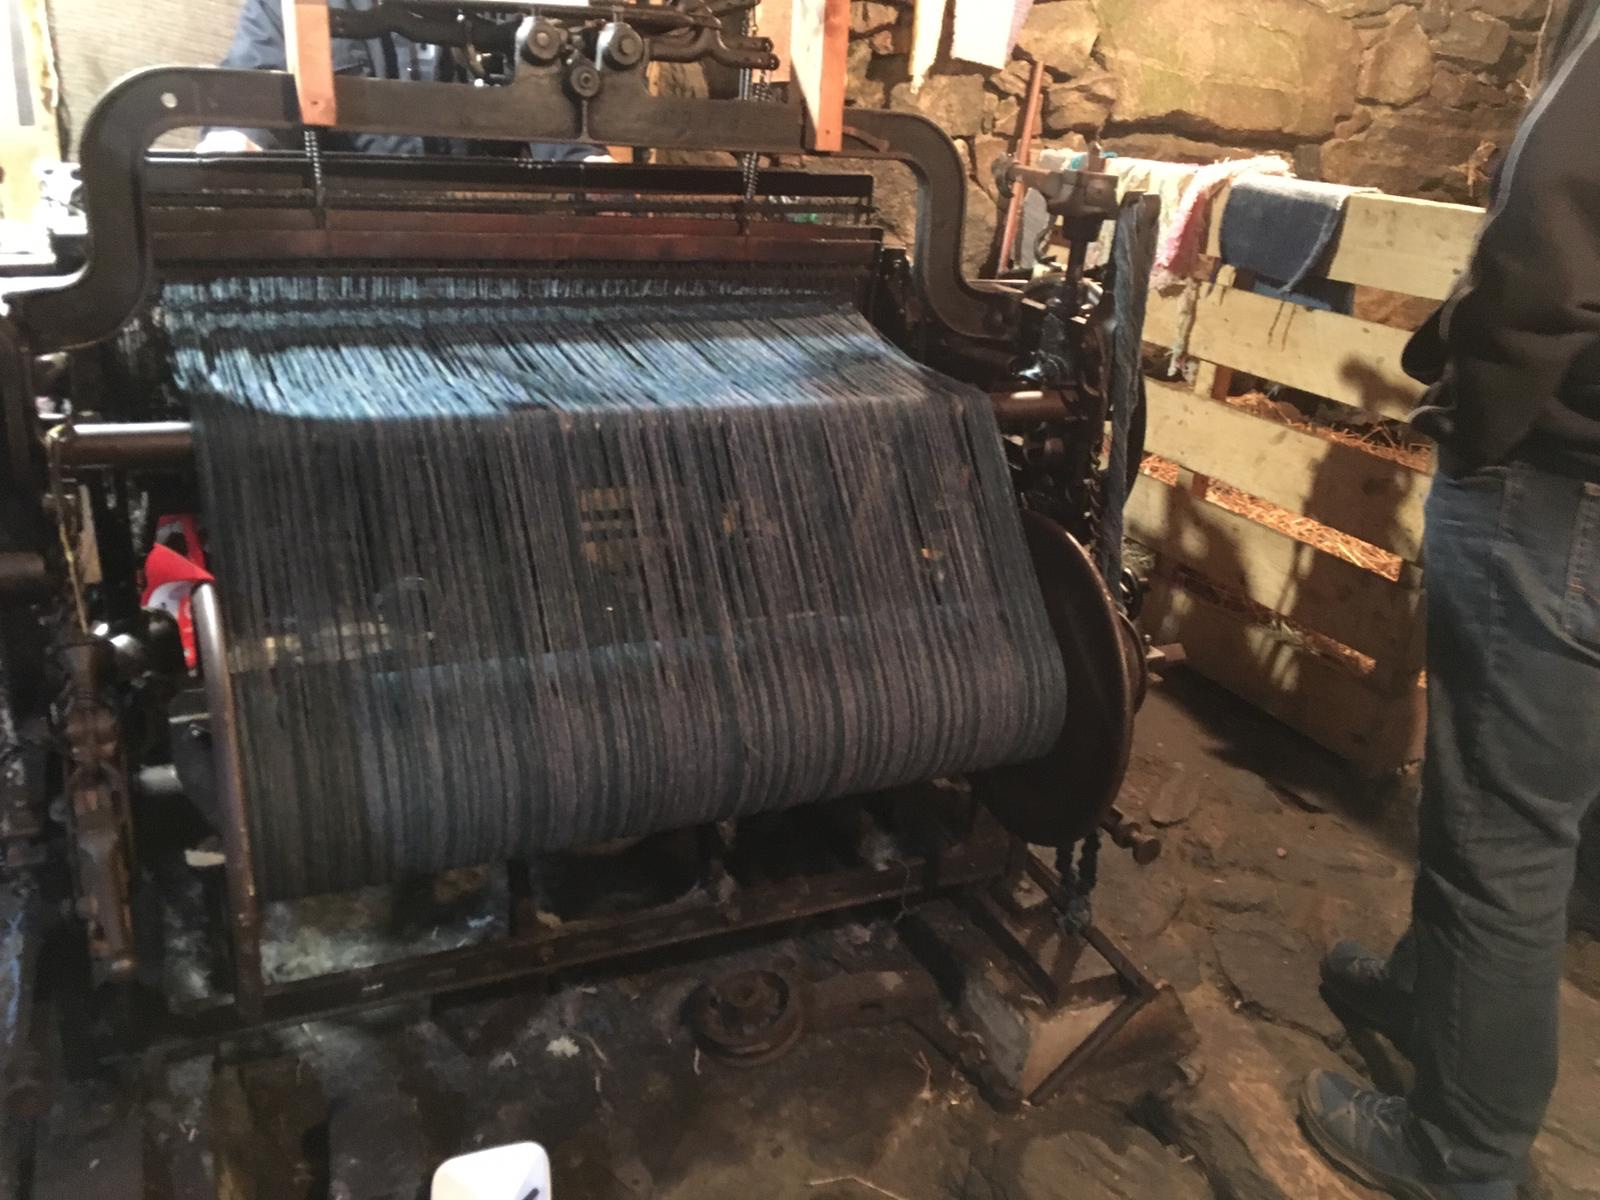 The almost 100 year-old Hattersley Loom